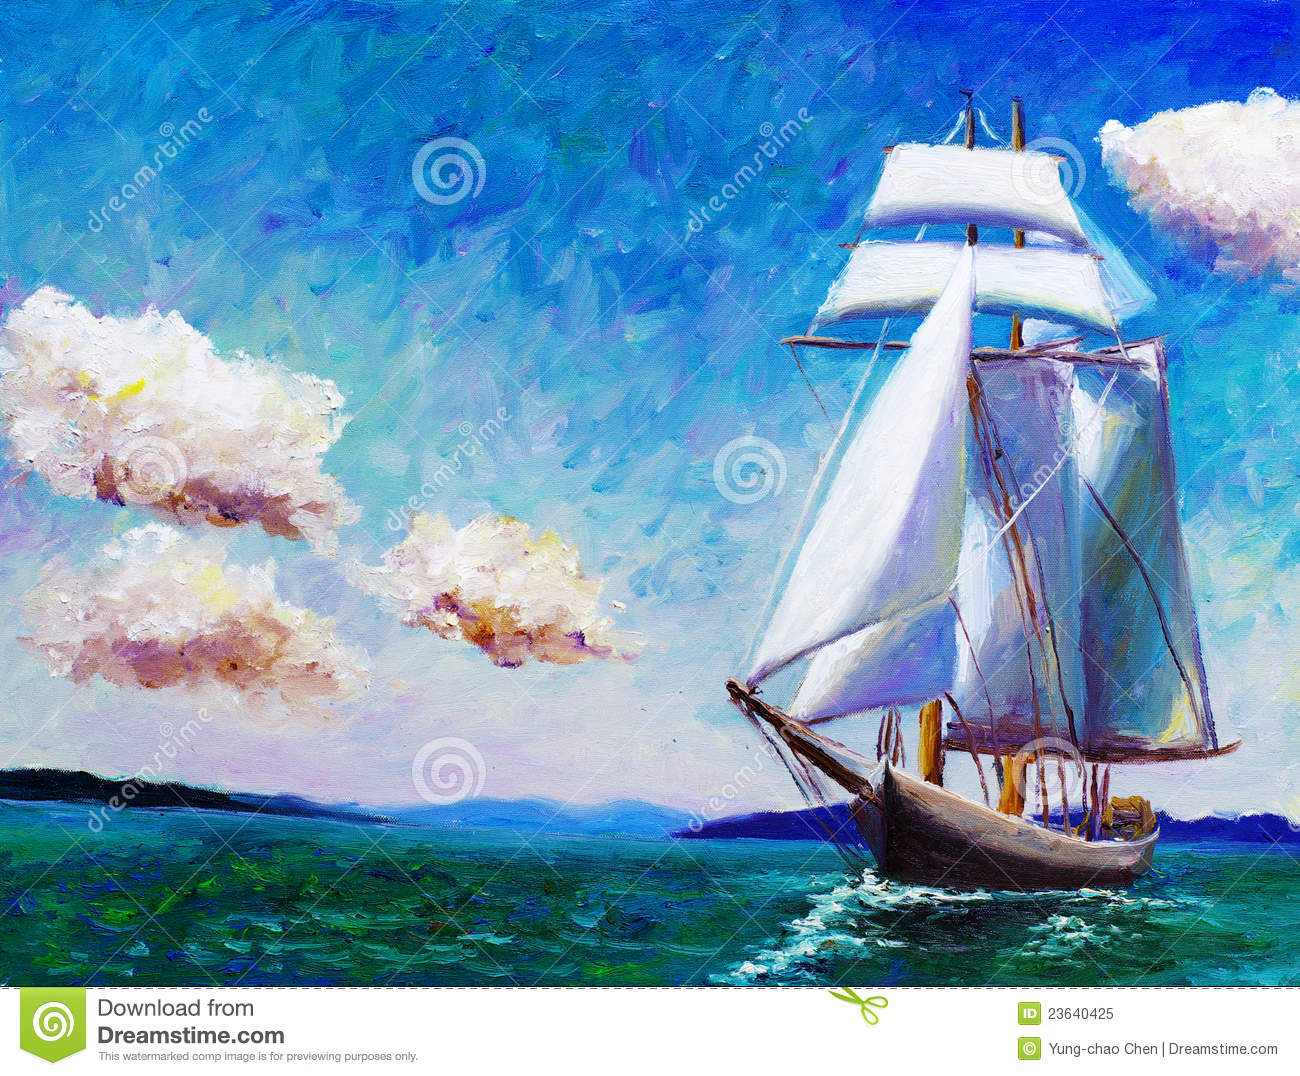 midwest map with Royalty Free Stock Photo Oil Painting Sailing Boat Image23640425 on Appalachian Country Squire Cut Stone also Nokay additionally Bucks County Cut Stone Ne moreover Pop Up wi additionally App2.